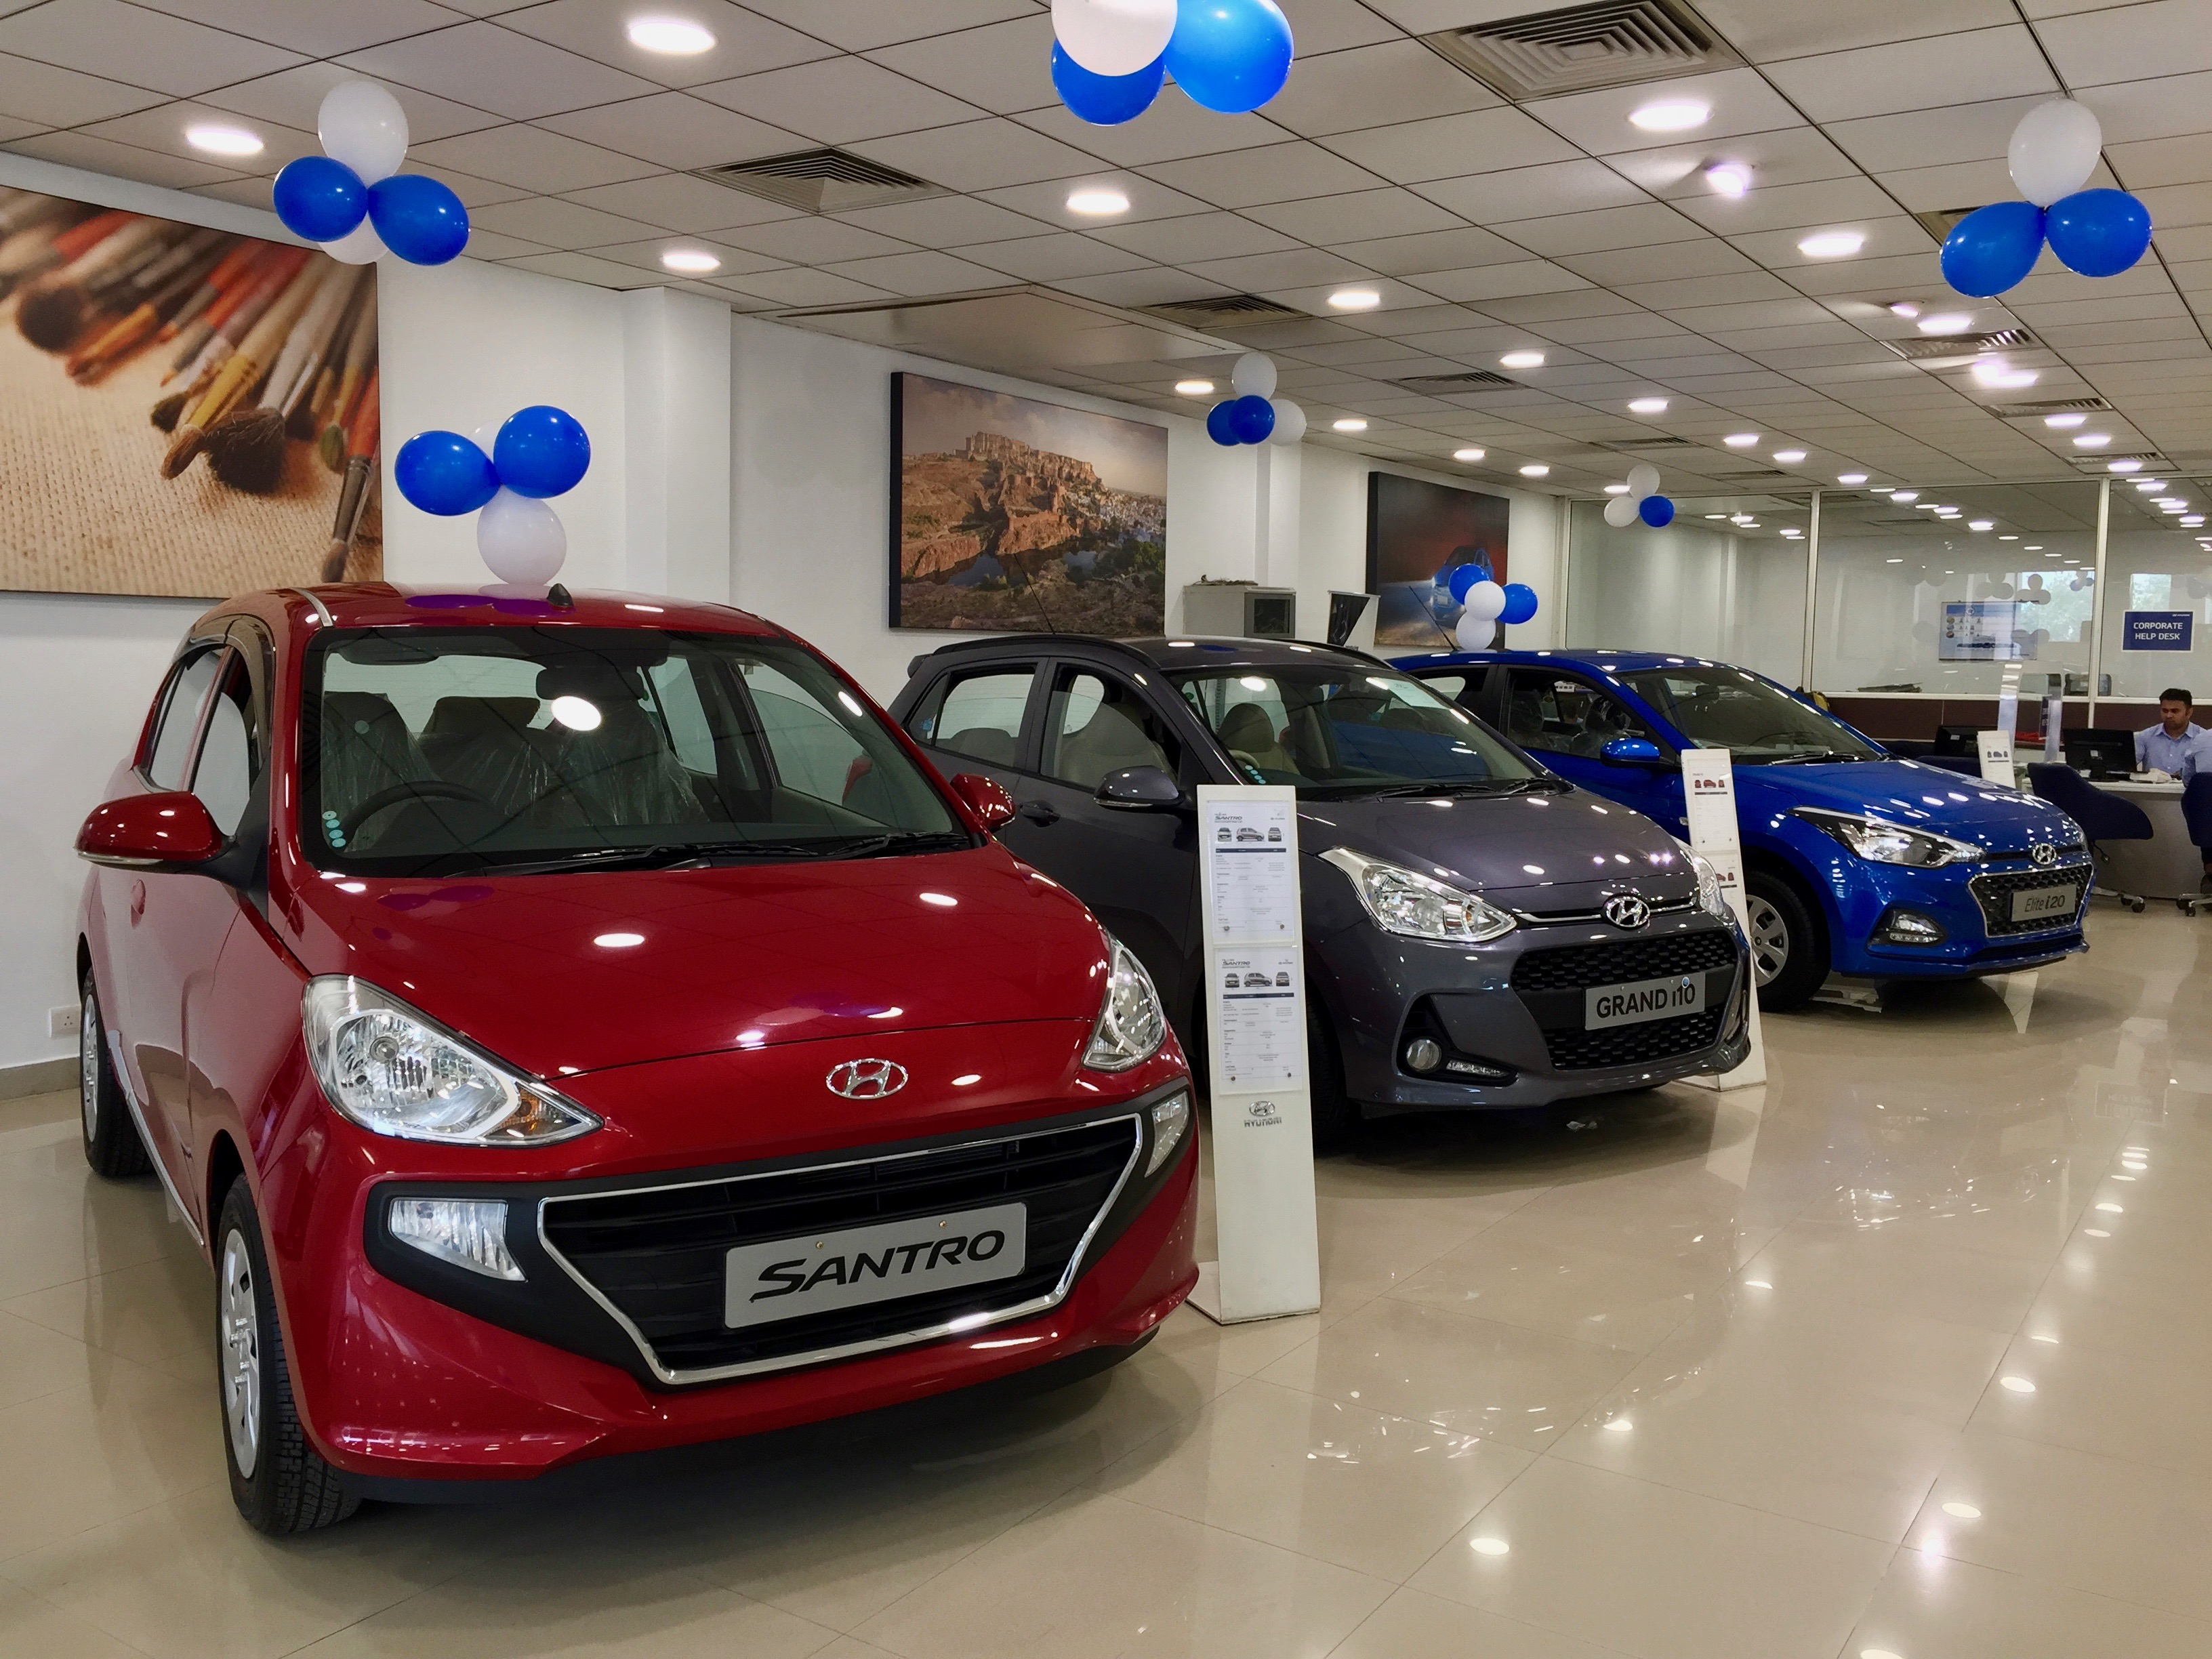 Like other carmakers, the Hyundai showroom in Gurgaon has witnessed a decline in sales of cars in recent months.